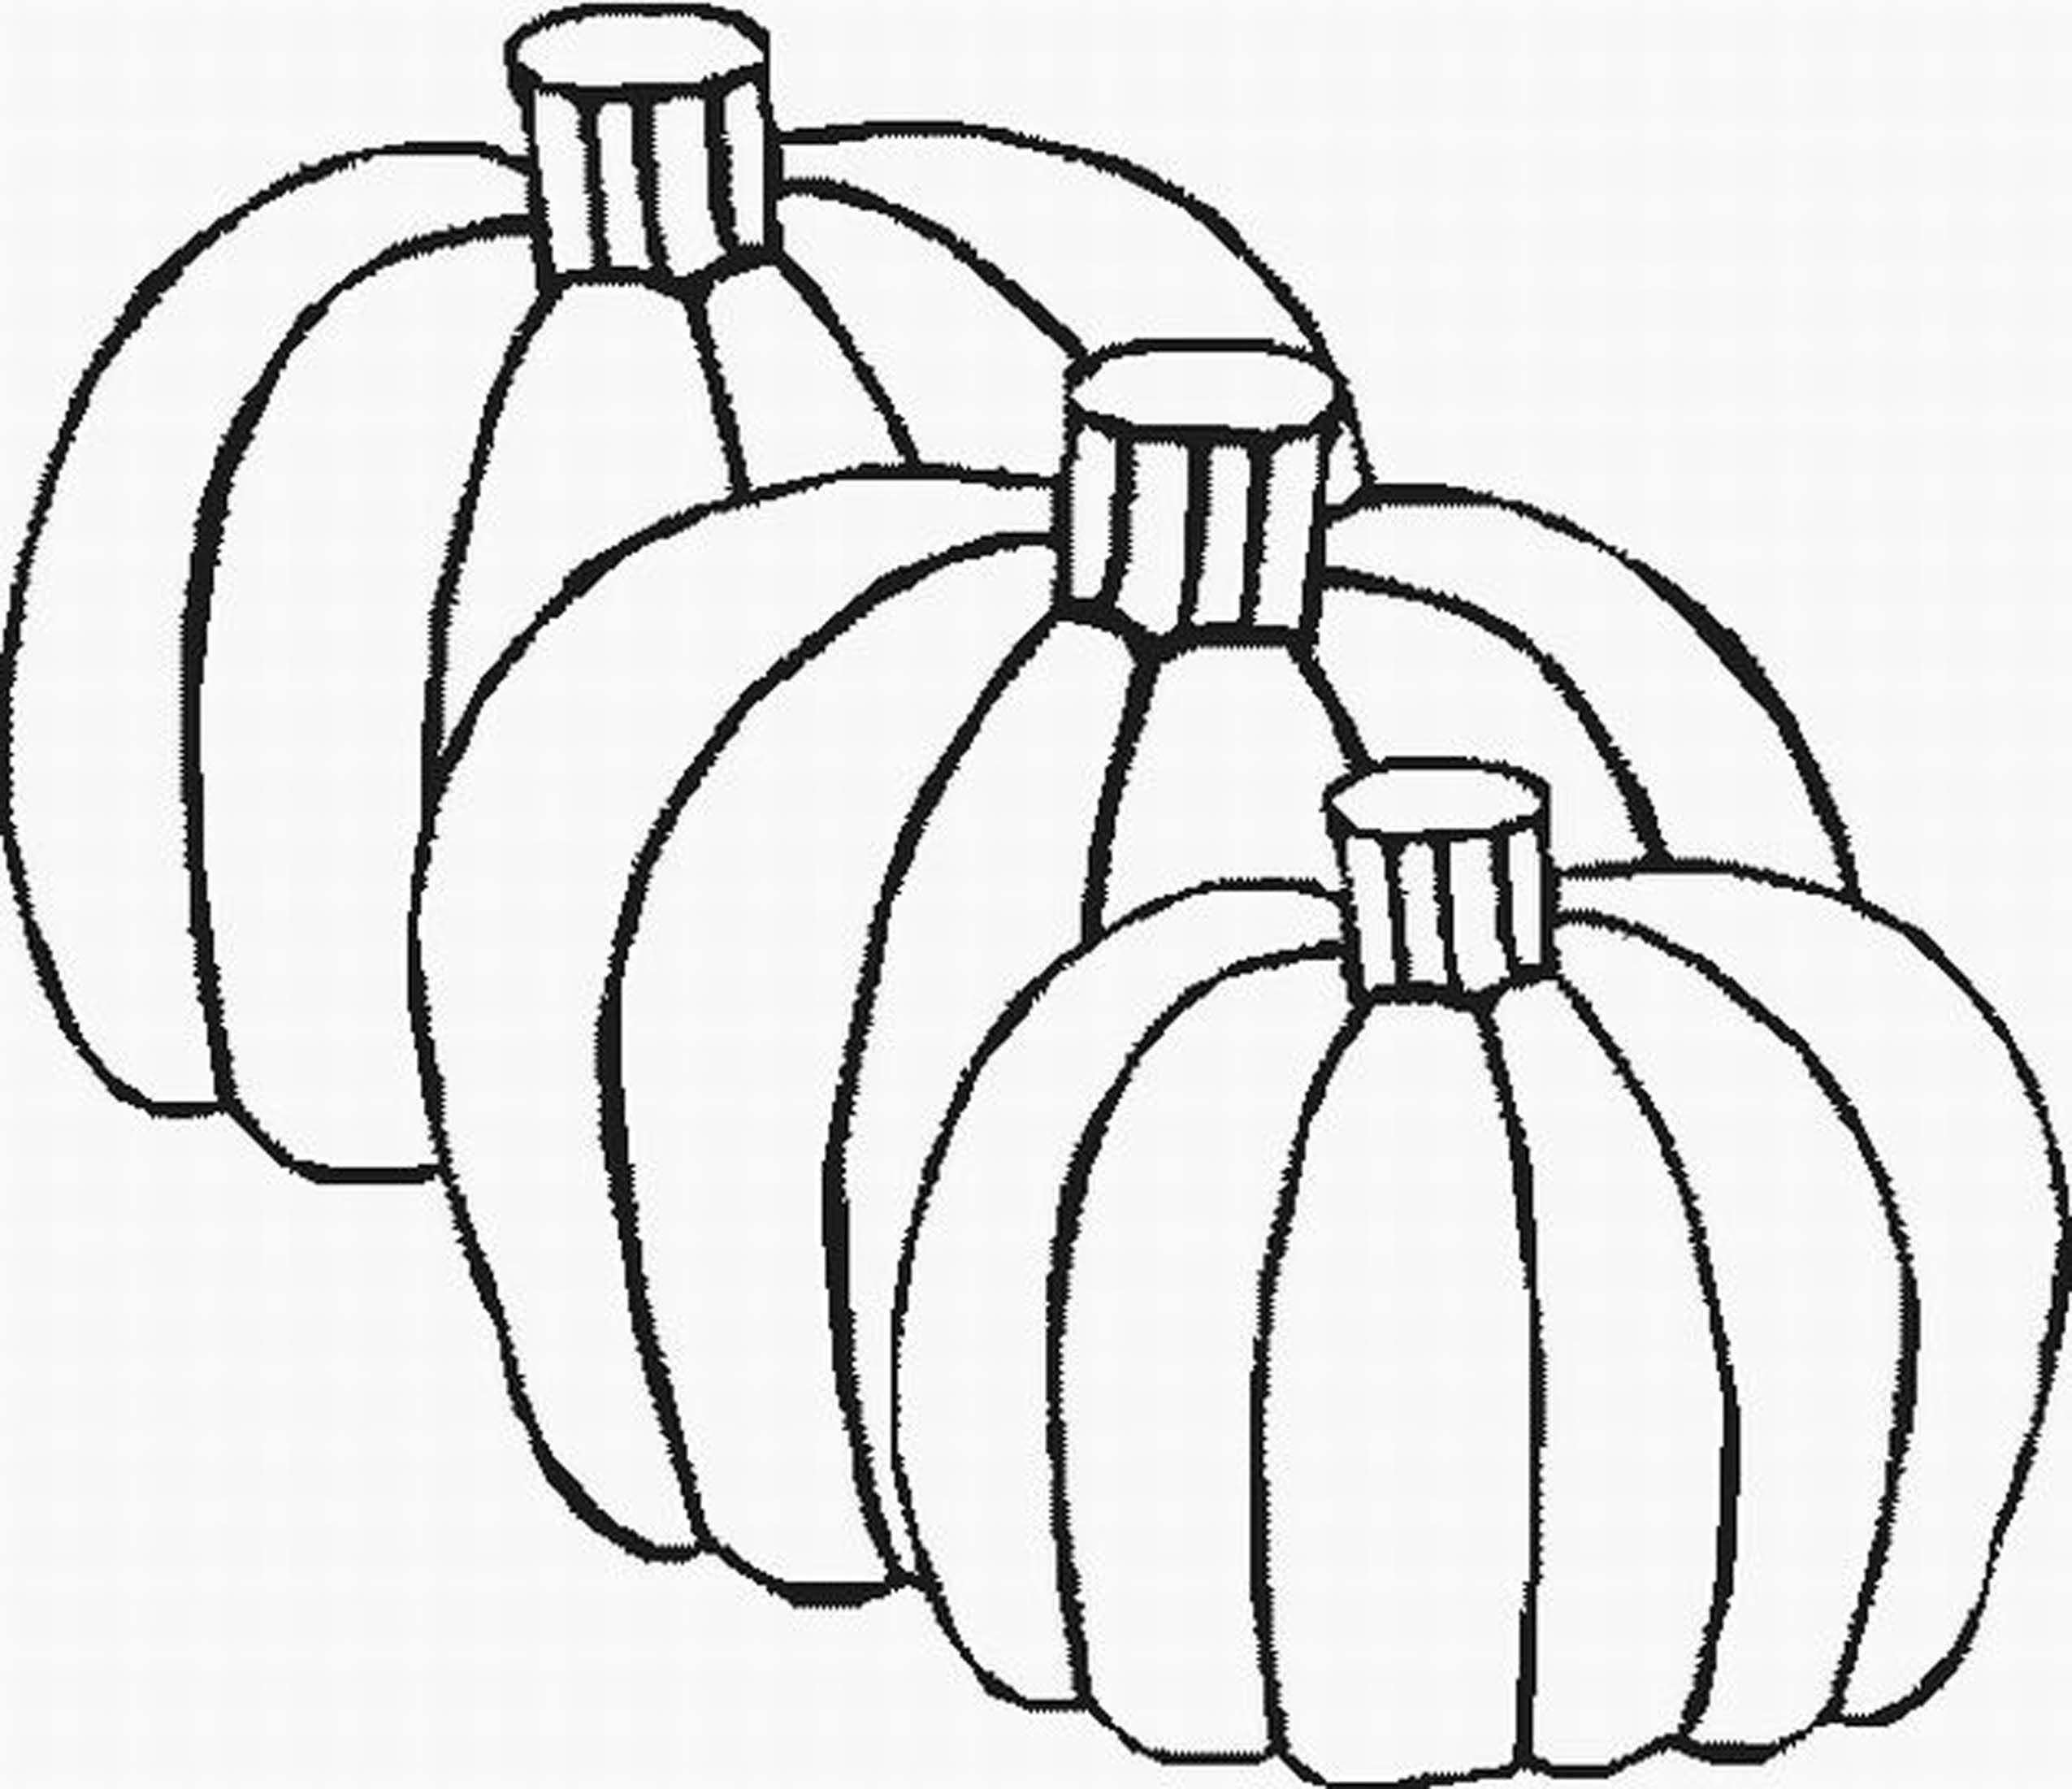 Pumpkin coloring pages for kids - Fall Coloring Pages Printables Printable Kids Colouring Pages